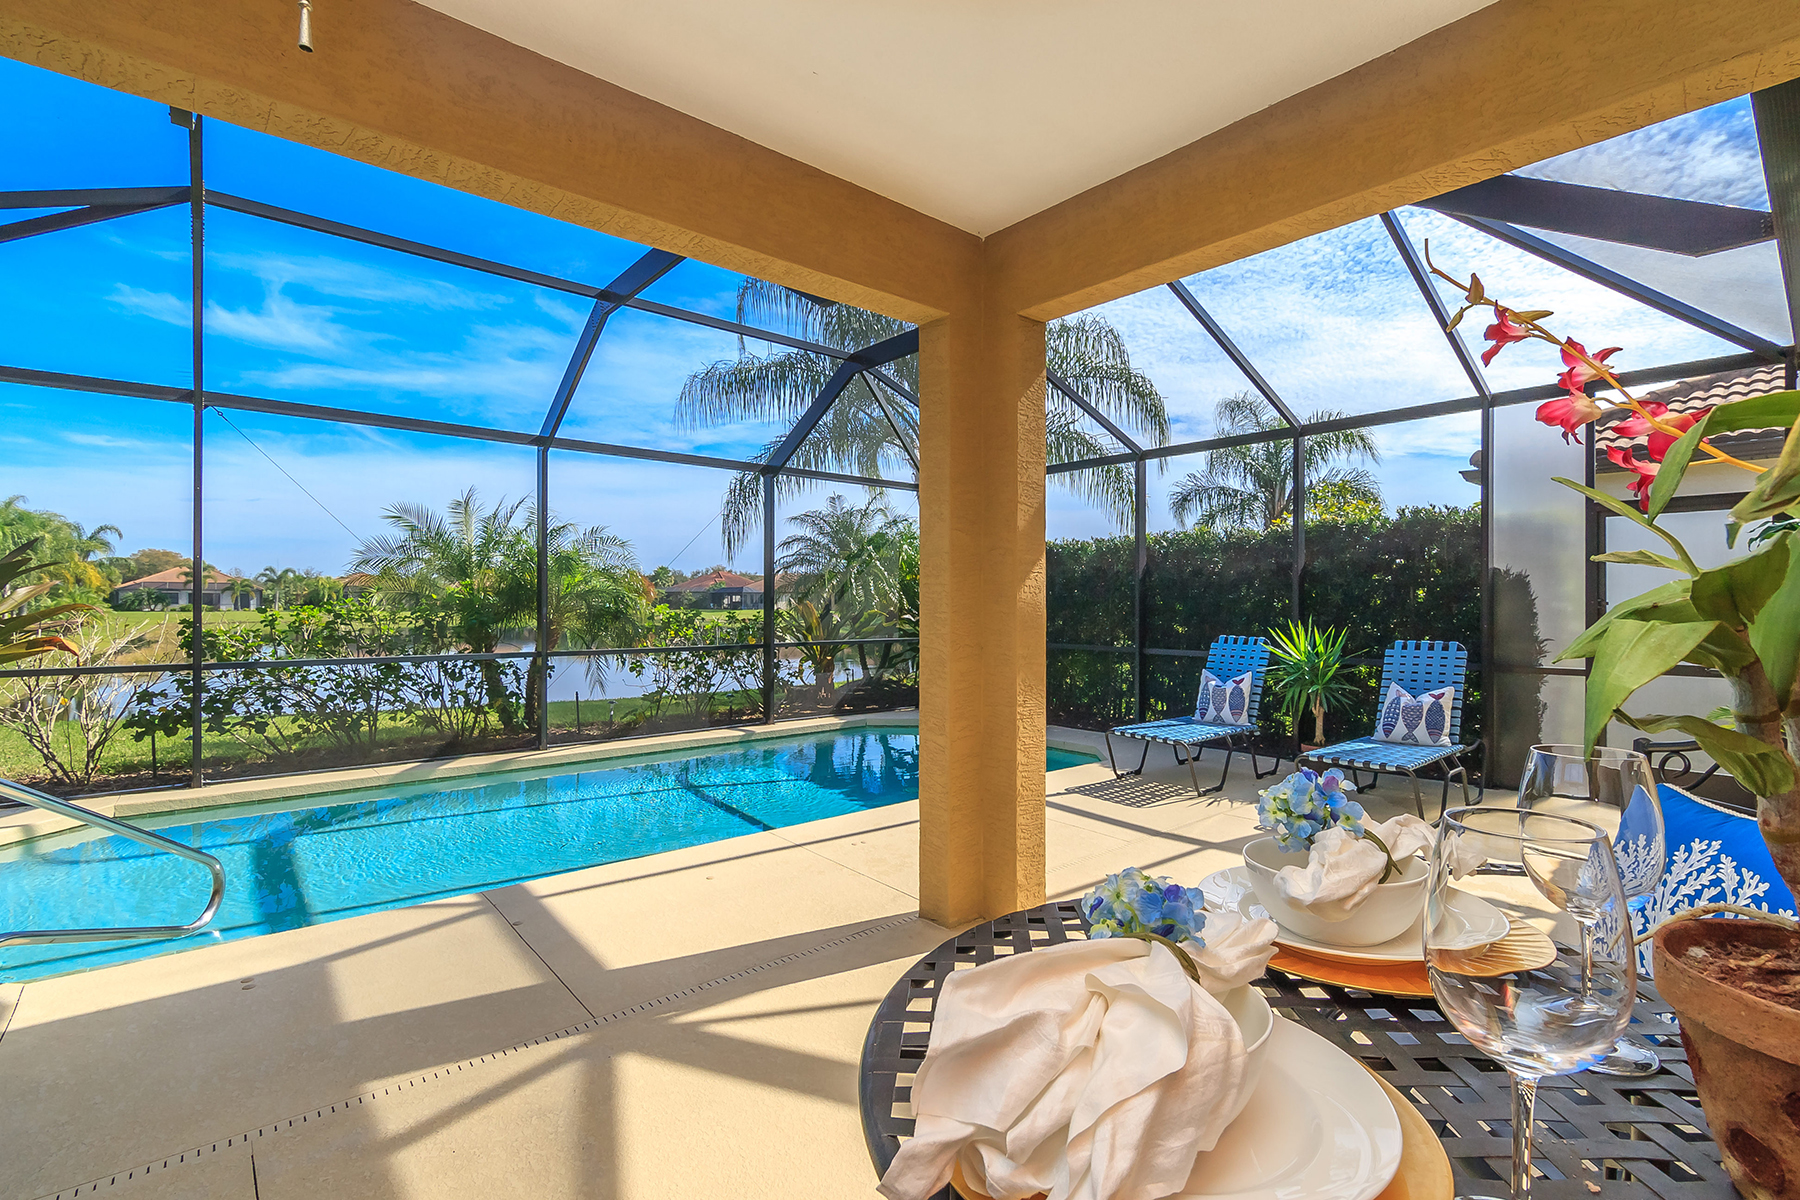 Single Family Home for Sale at RESIDENCES AT UNIVERSITY GROVES 8016 36th Street Cir E Sarasota, Florida 34243 United States